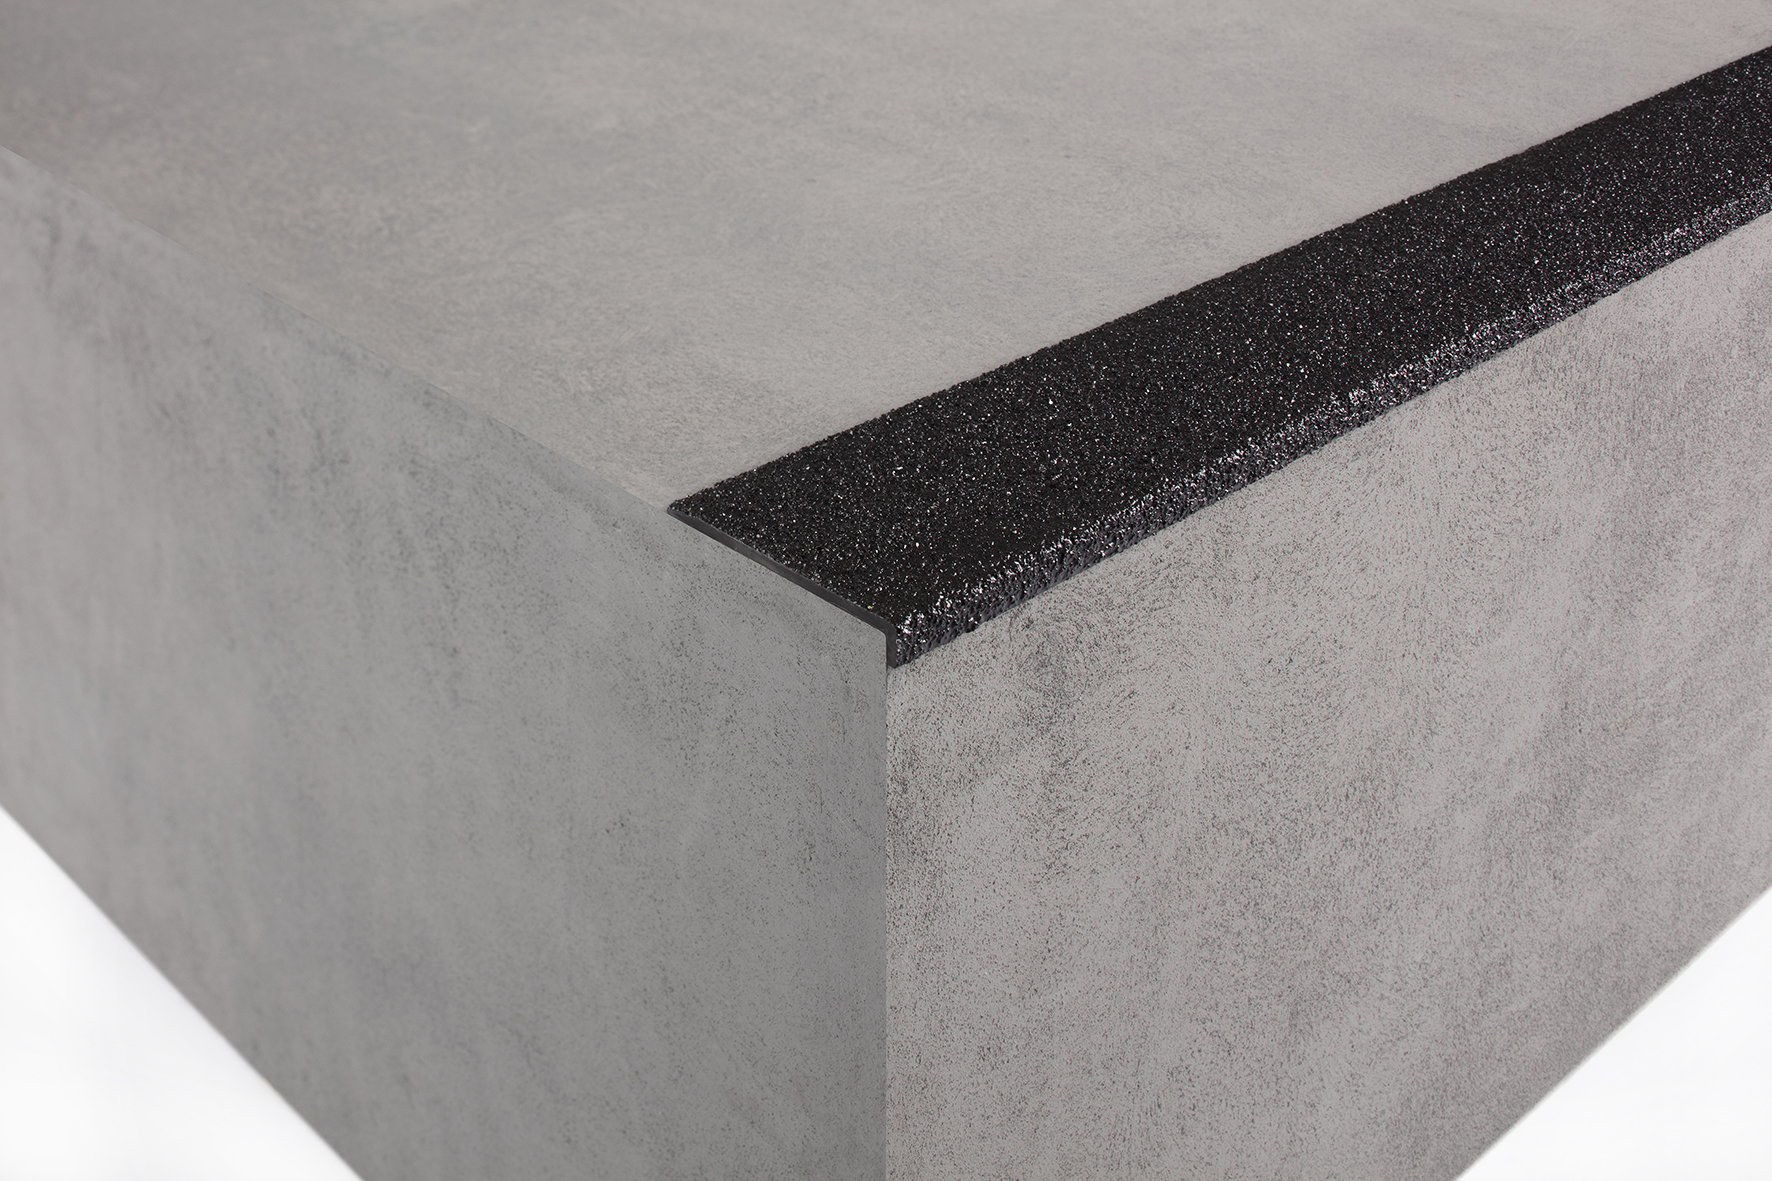 Carborundum Heavy Duty Anti Slip Stair Nosing